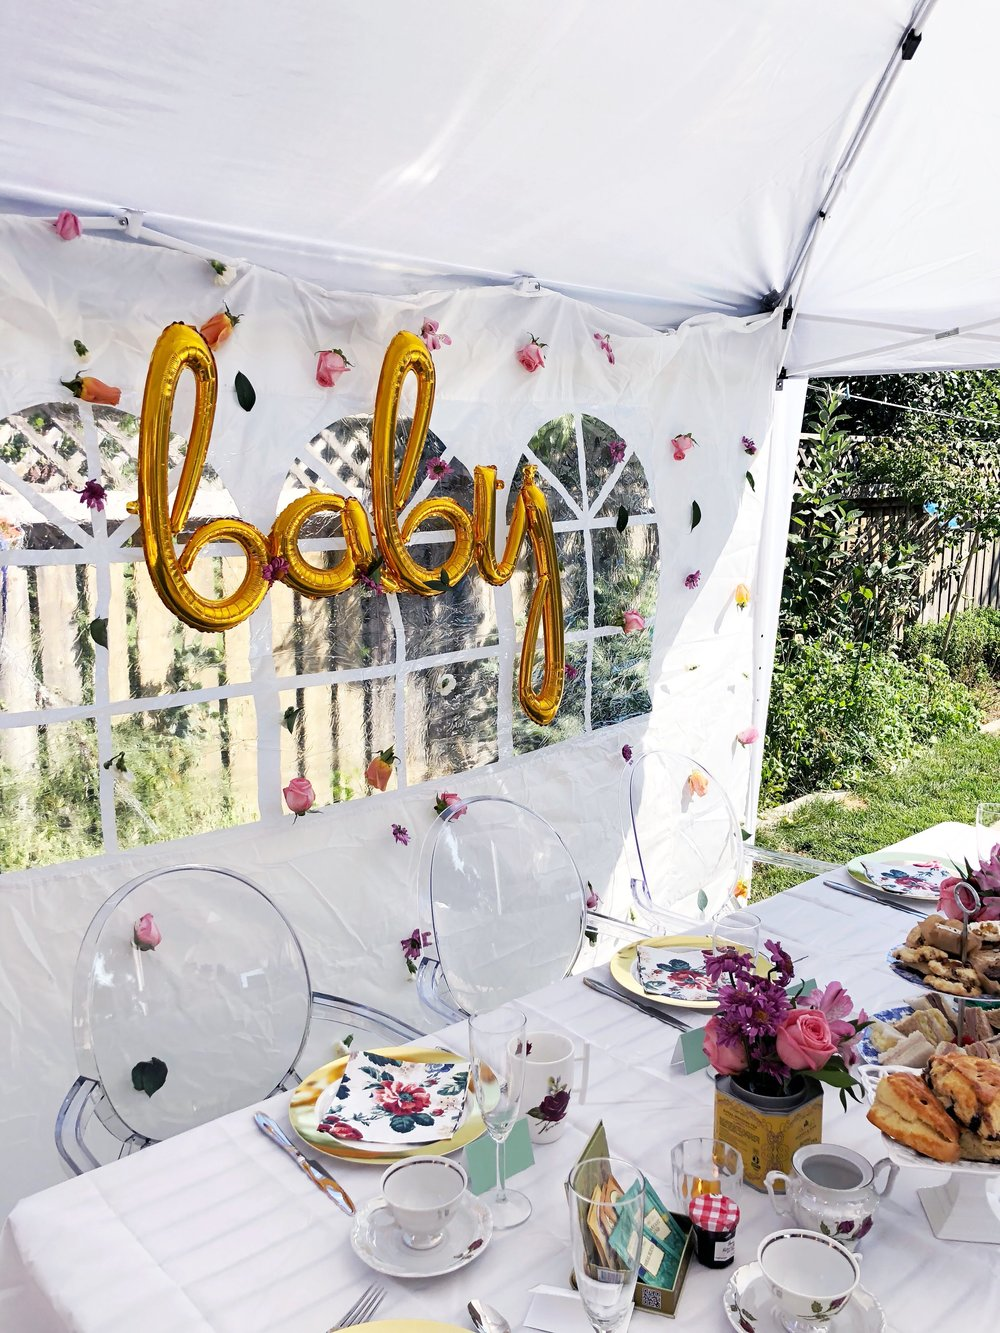 """Baby Sprinkle - Baby Shower Coordination // September 2018""""Pastiche Events truly went above and beyond to create the most perfect Baby Sprinkle for my sister. Khrystyna took my idea of a 'garden tea party' theme and ran with it. Her organization skills, creativity and time management was the reason the party was such a success. As host of the event, I was still able to greet my guests and enjoy myself because I knew Pastiche Events had everything under control. My favourite part of working with Khrystyna was her attention to detail. She came up with the idea of using tea tins for flower centrepieces, they were definitely eye catching. I am so glad Pastiche Events was a part of my sisters special day, without them I would not have been able to pull off such an amazing party!"""" - Iryna (Sister of the Mom-to-be!)"""